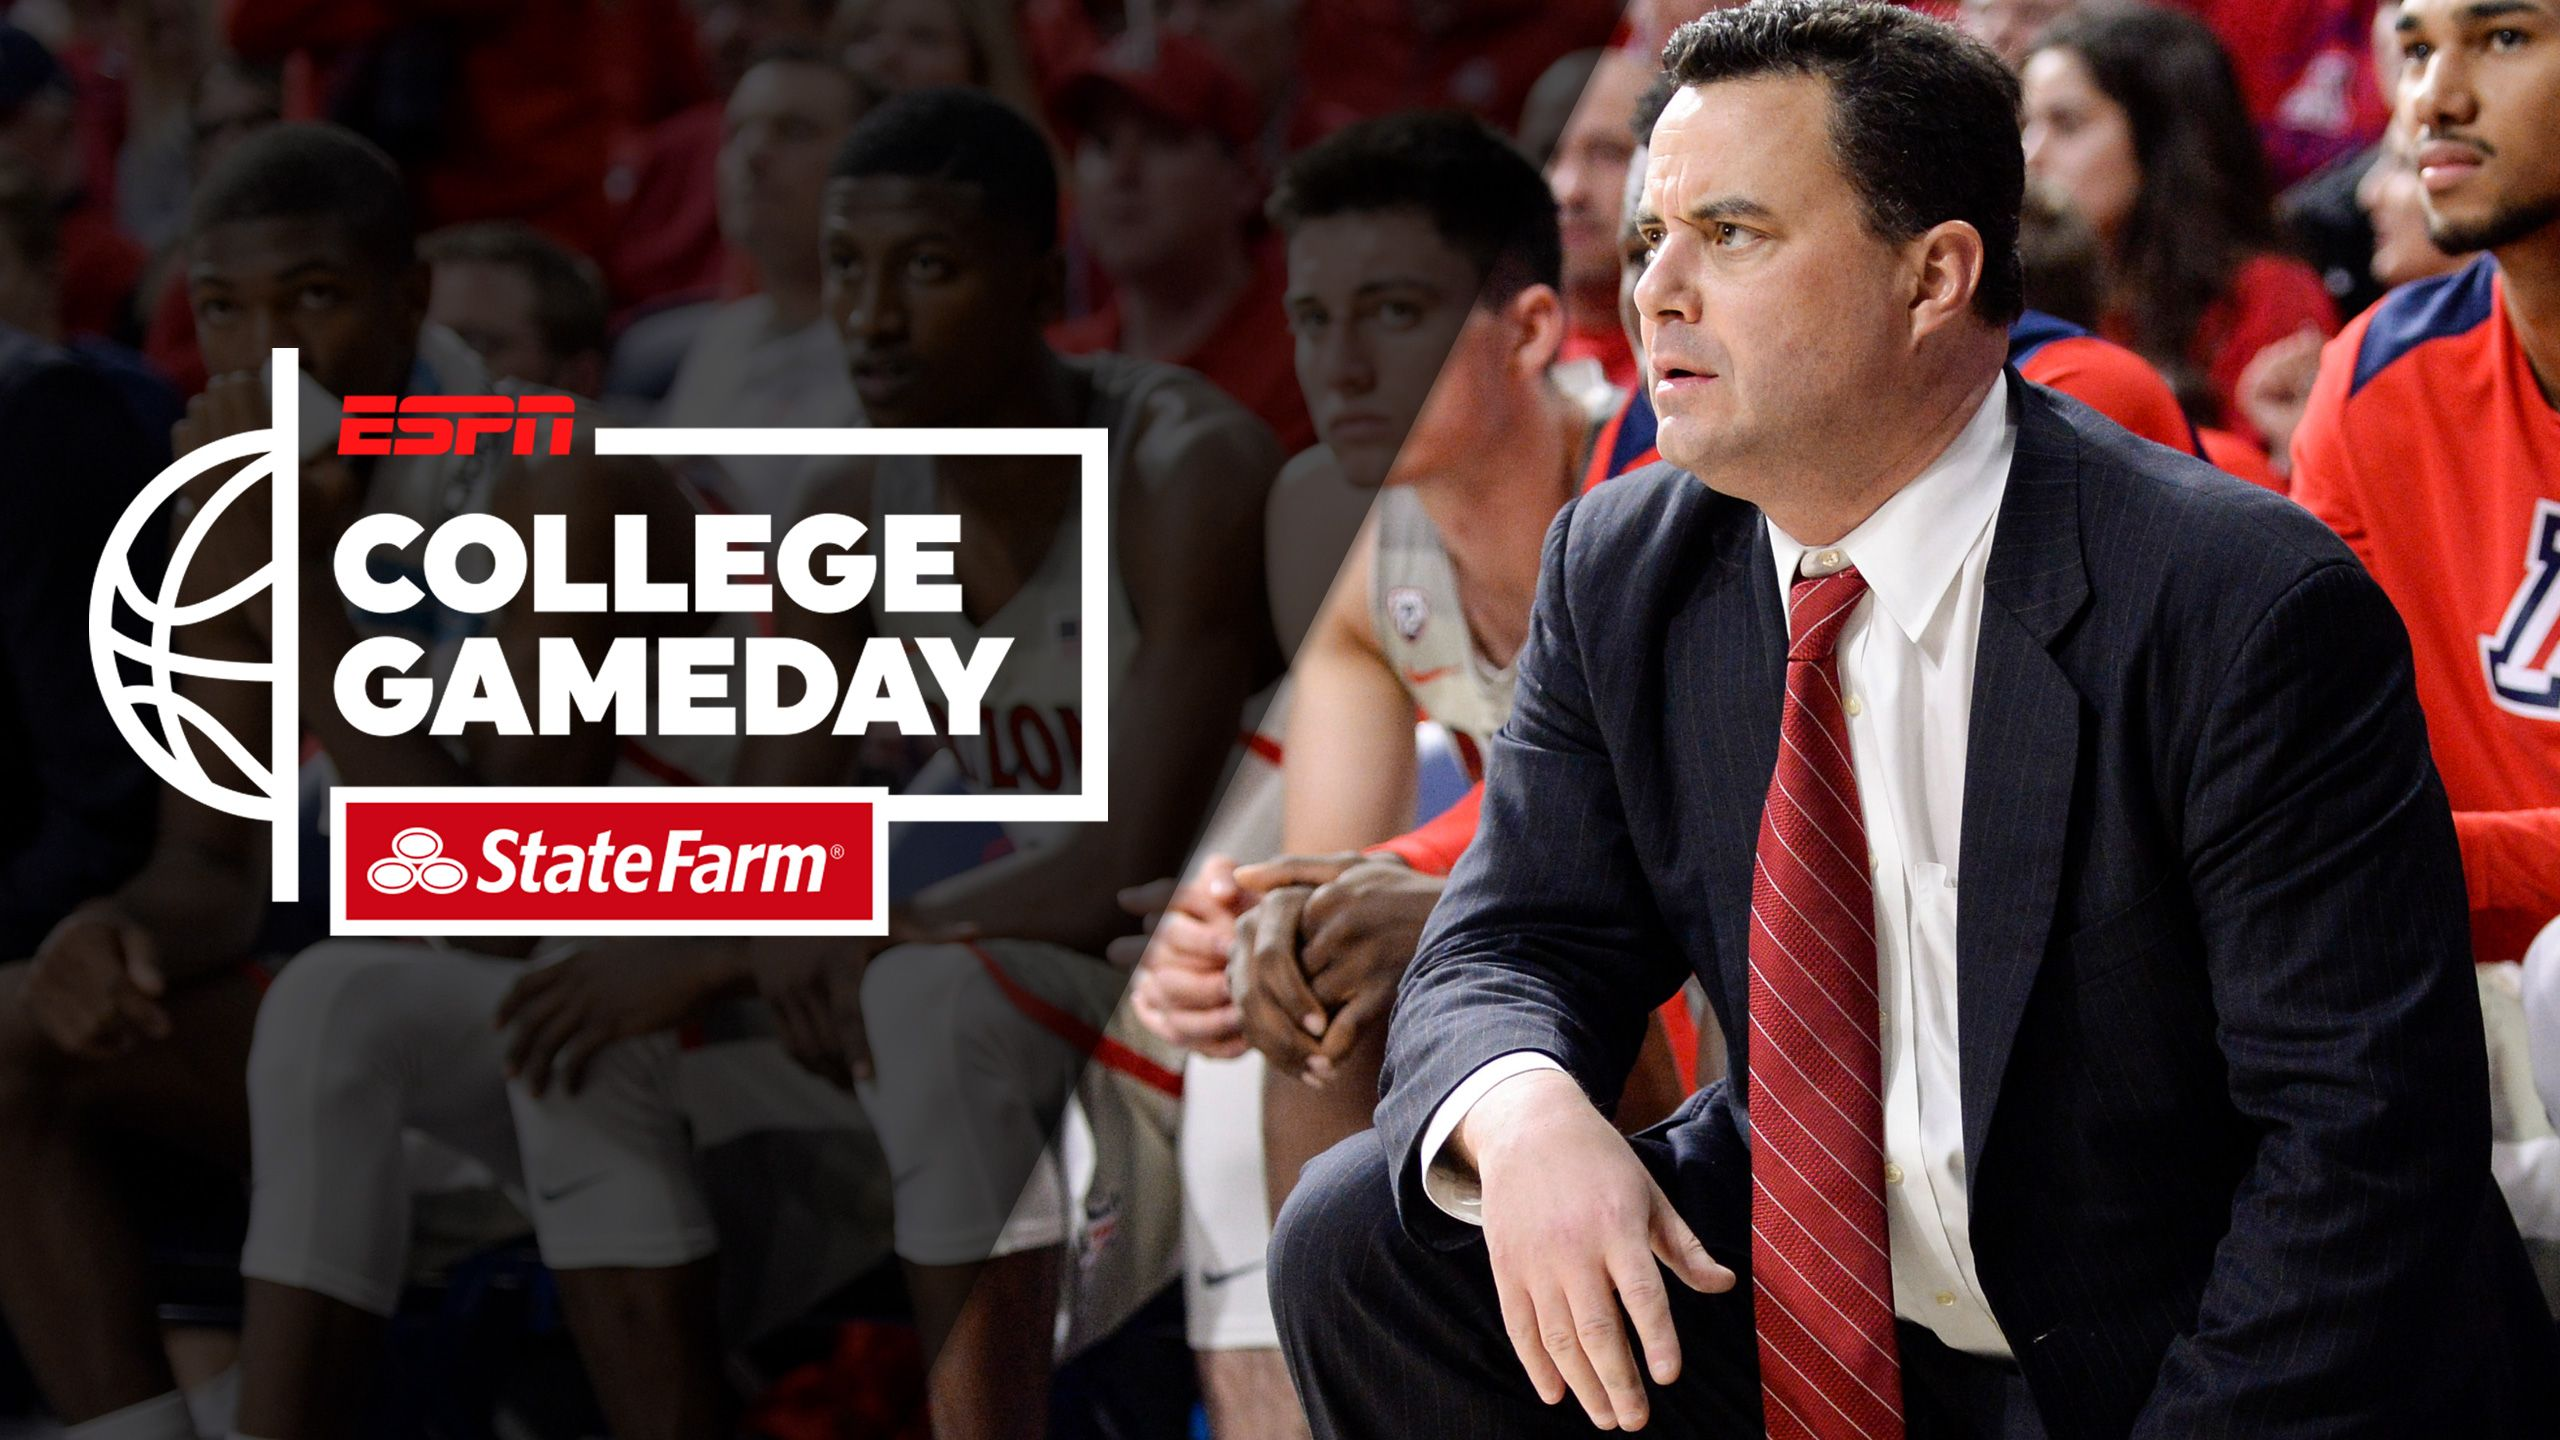 Sat, 2/24 - College GameDay Covered by State Farm